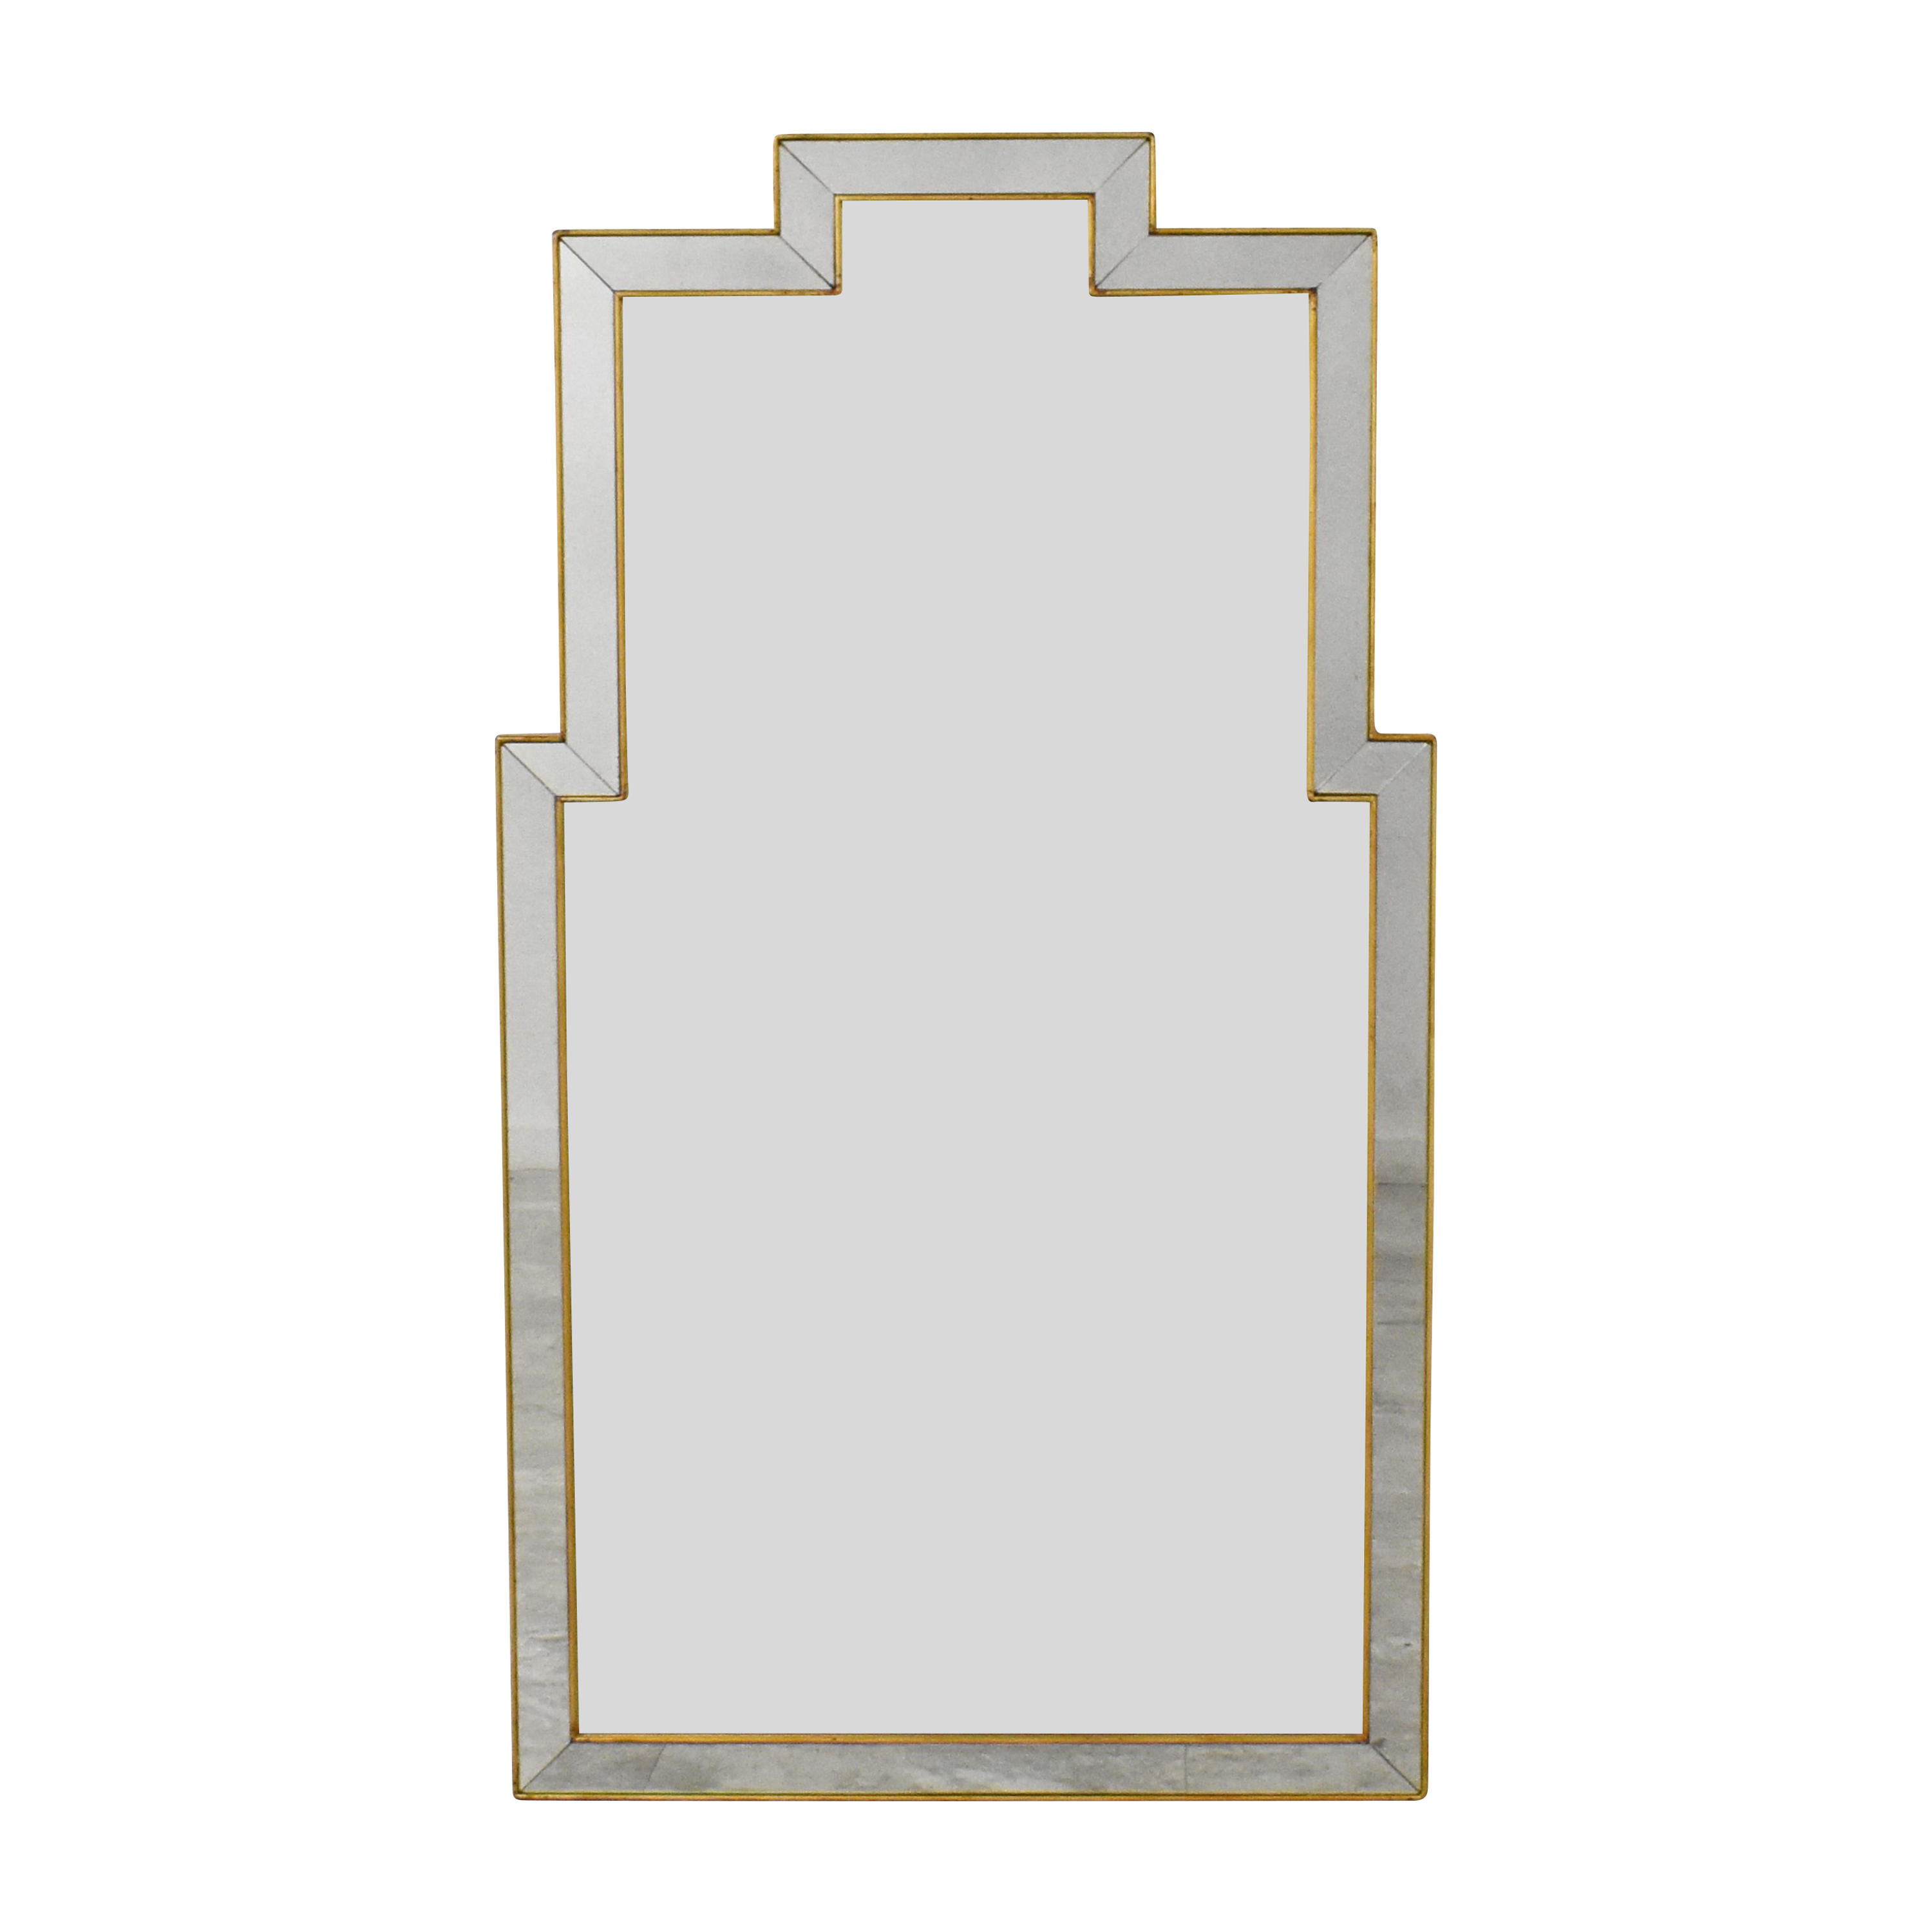 Hickory White Lillian August for Hickory White Athena Mirror price